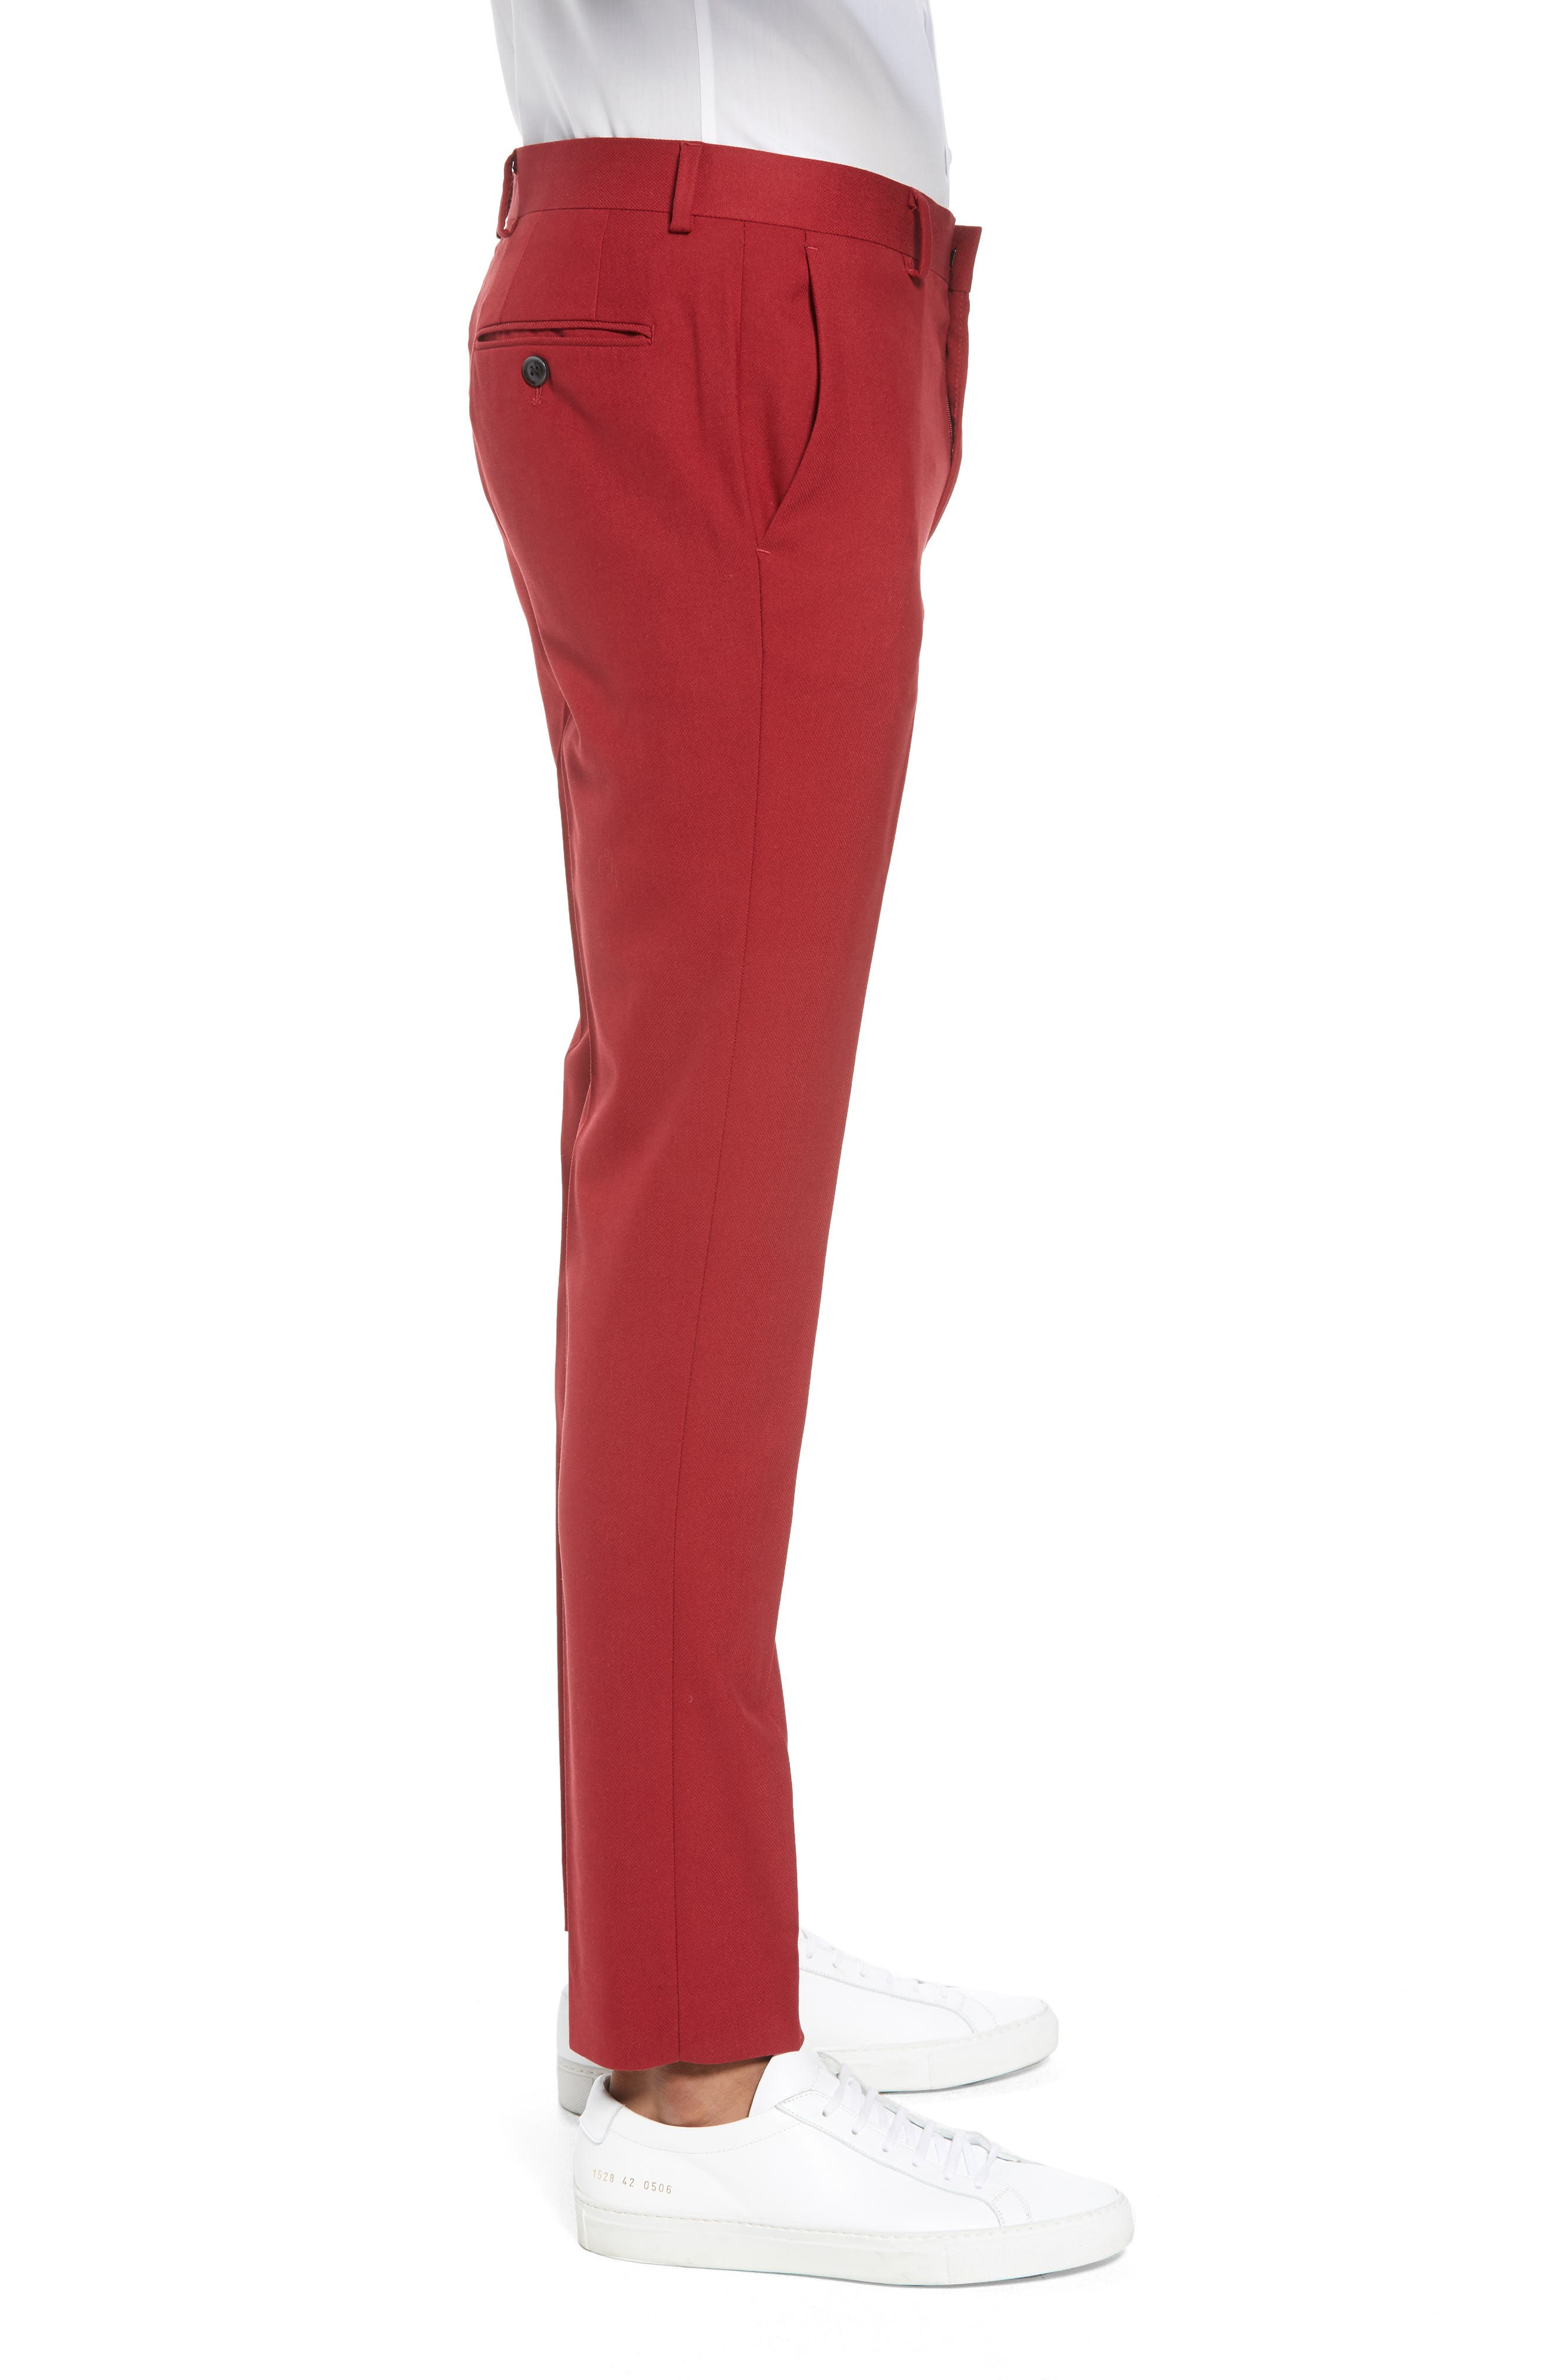 Skinny Fit Suit Trousers,                             Alternate thumbnail 3, color,                             600